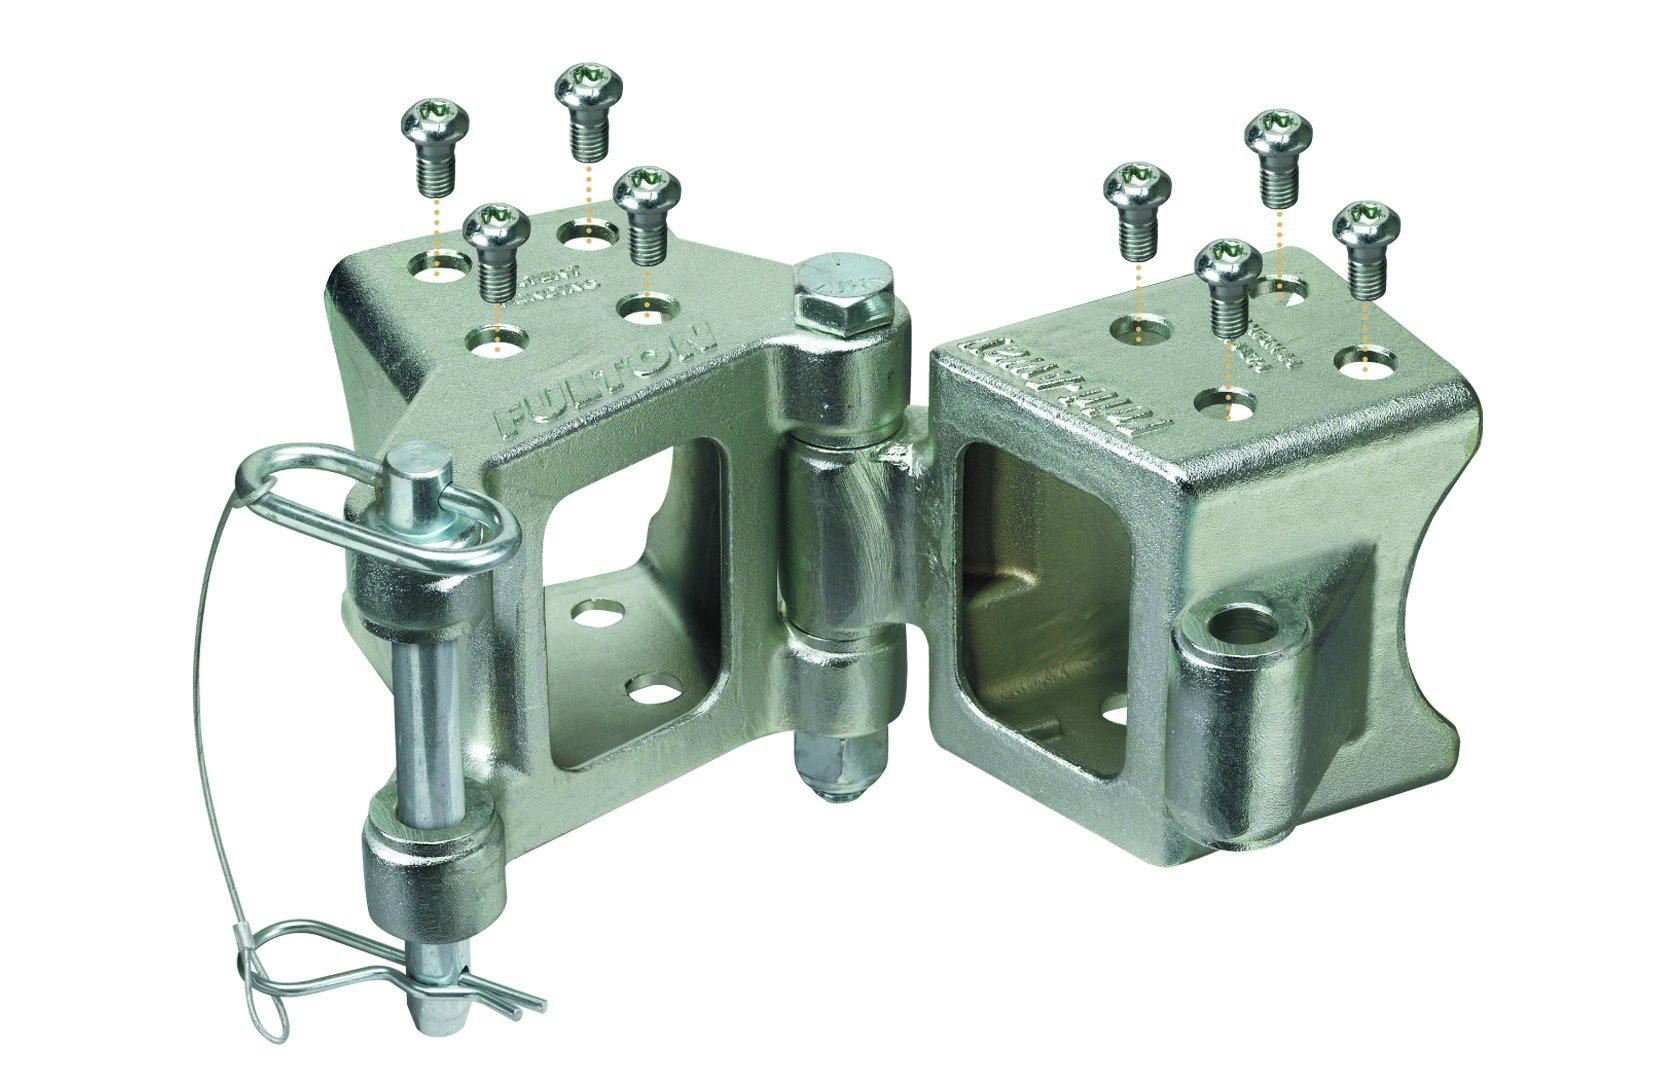 Fulton HDPB230101 Fold-Away Bolt-On Hinge Kit for 2'' x 3'' Trailer Beam - up to 5,000 lb. GTW